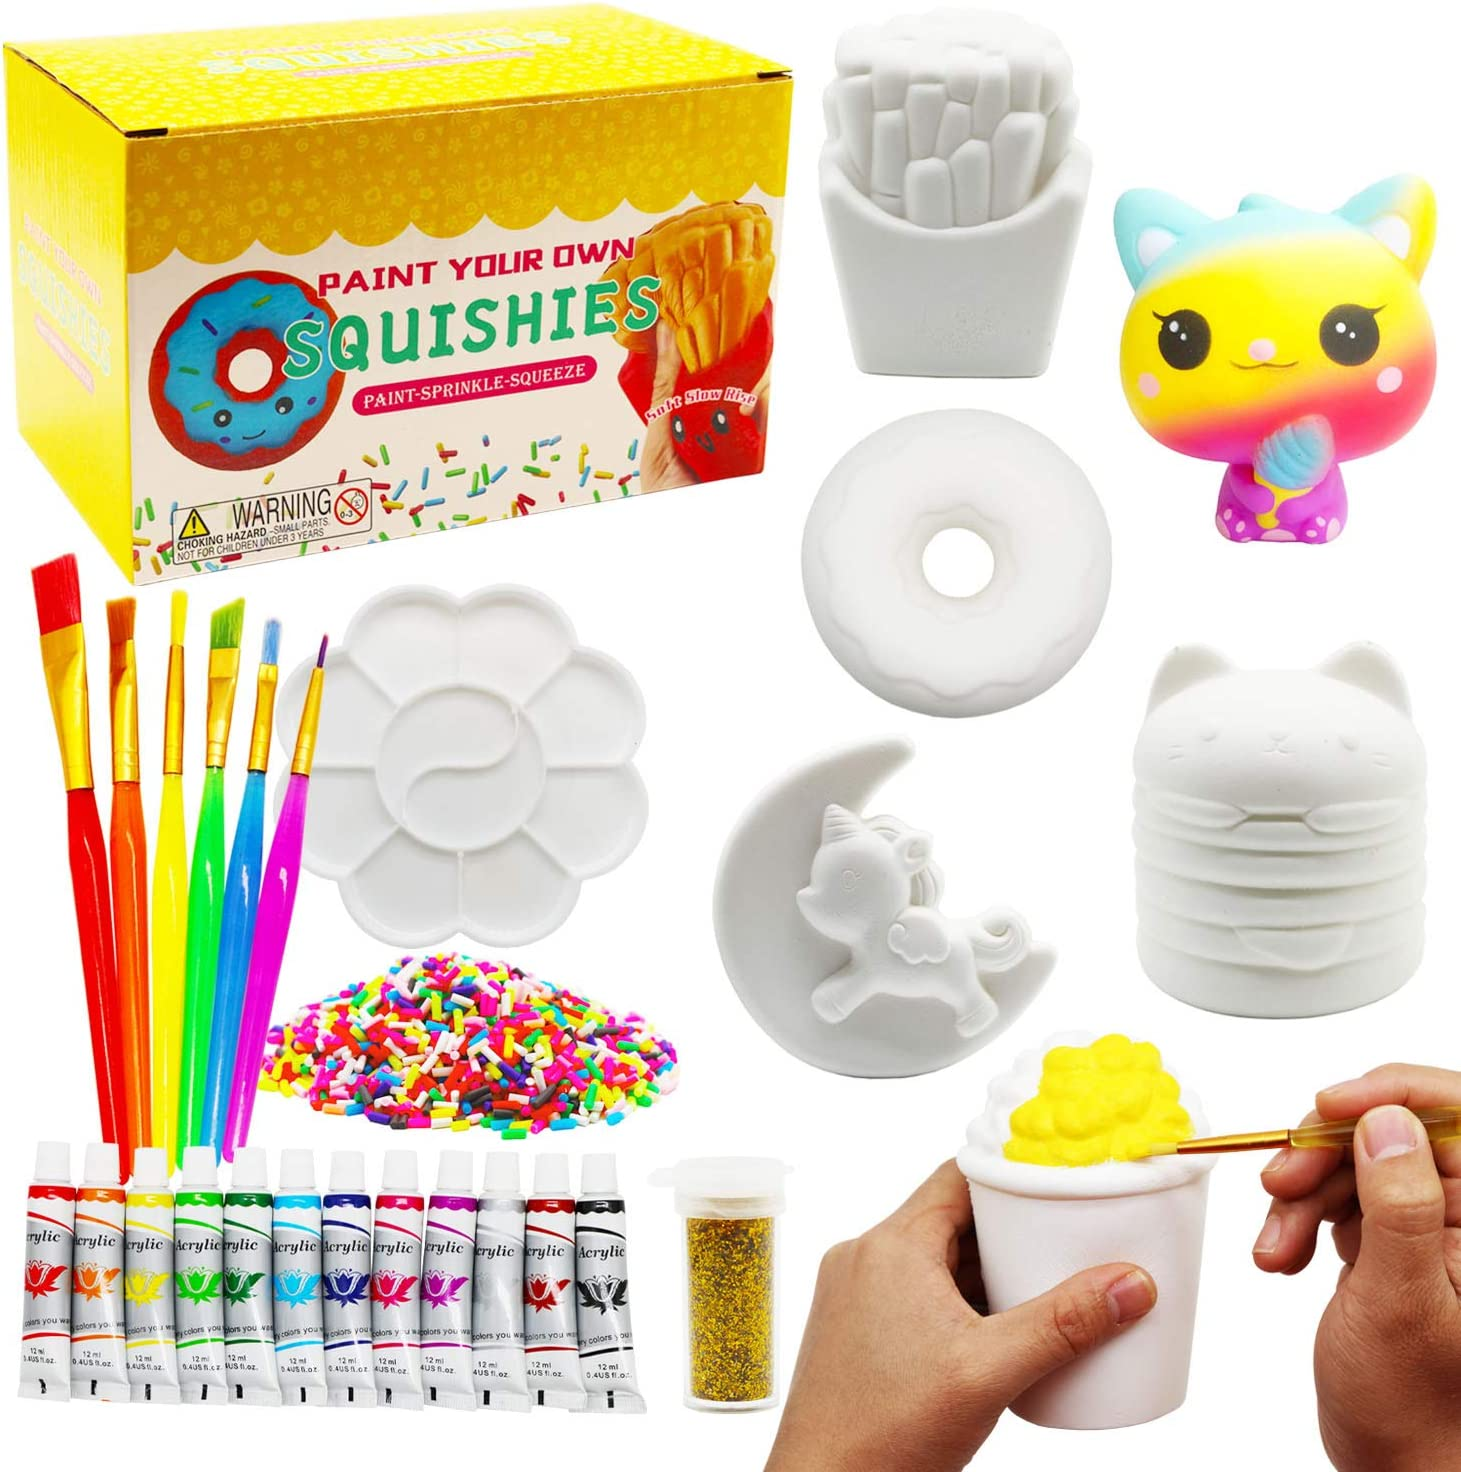 Korilave Squishies DIY Art Crafts Dessert Kits for Girls Gift, Paint Your Own Squishy Toy Jumbo Soft Slow Rising Stress Relief Fidget Toys for Ages 4 5 6 7 8 Kids(27Pcs)